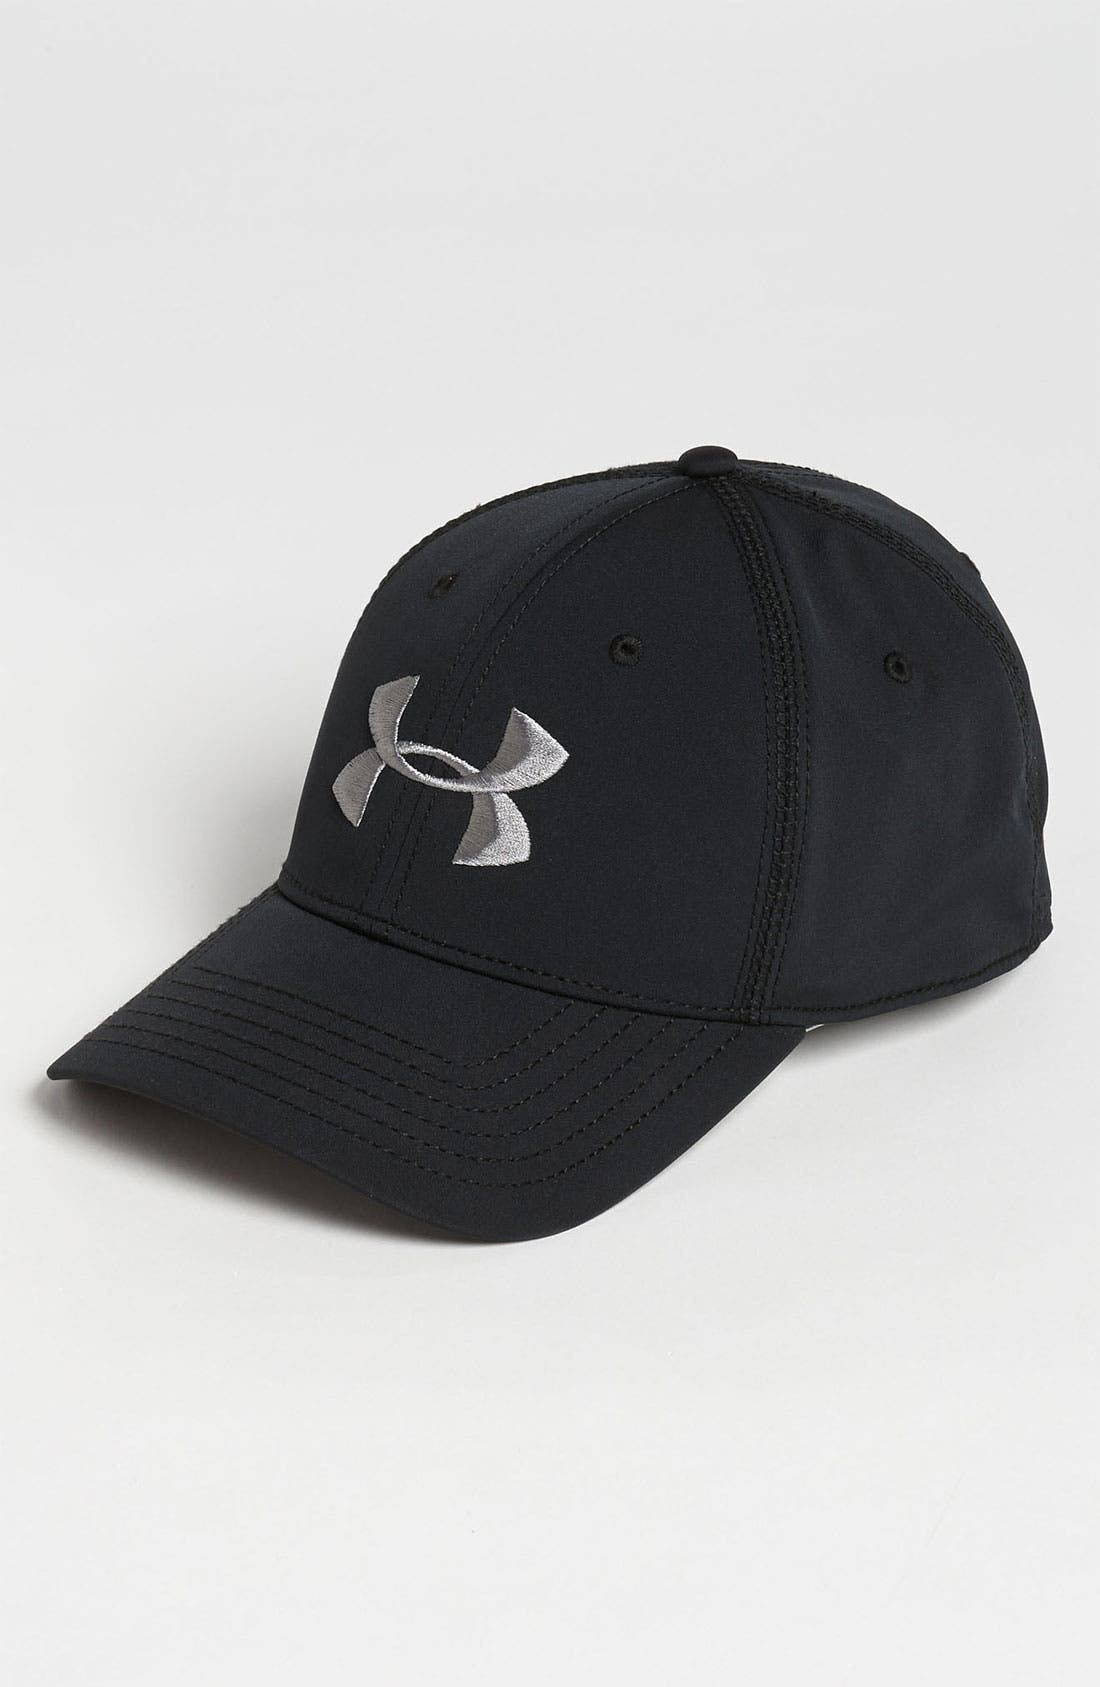 Alternate Image 1 Selected - Under Armour 'Huddle' Baseball Cap